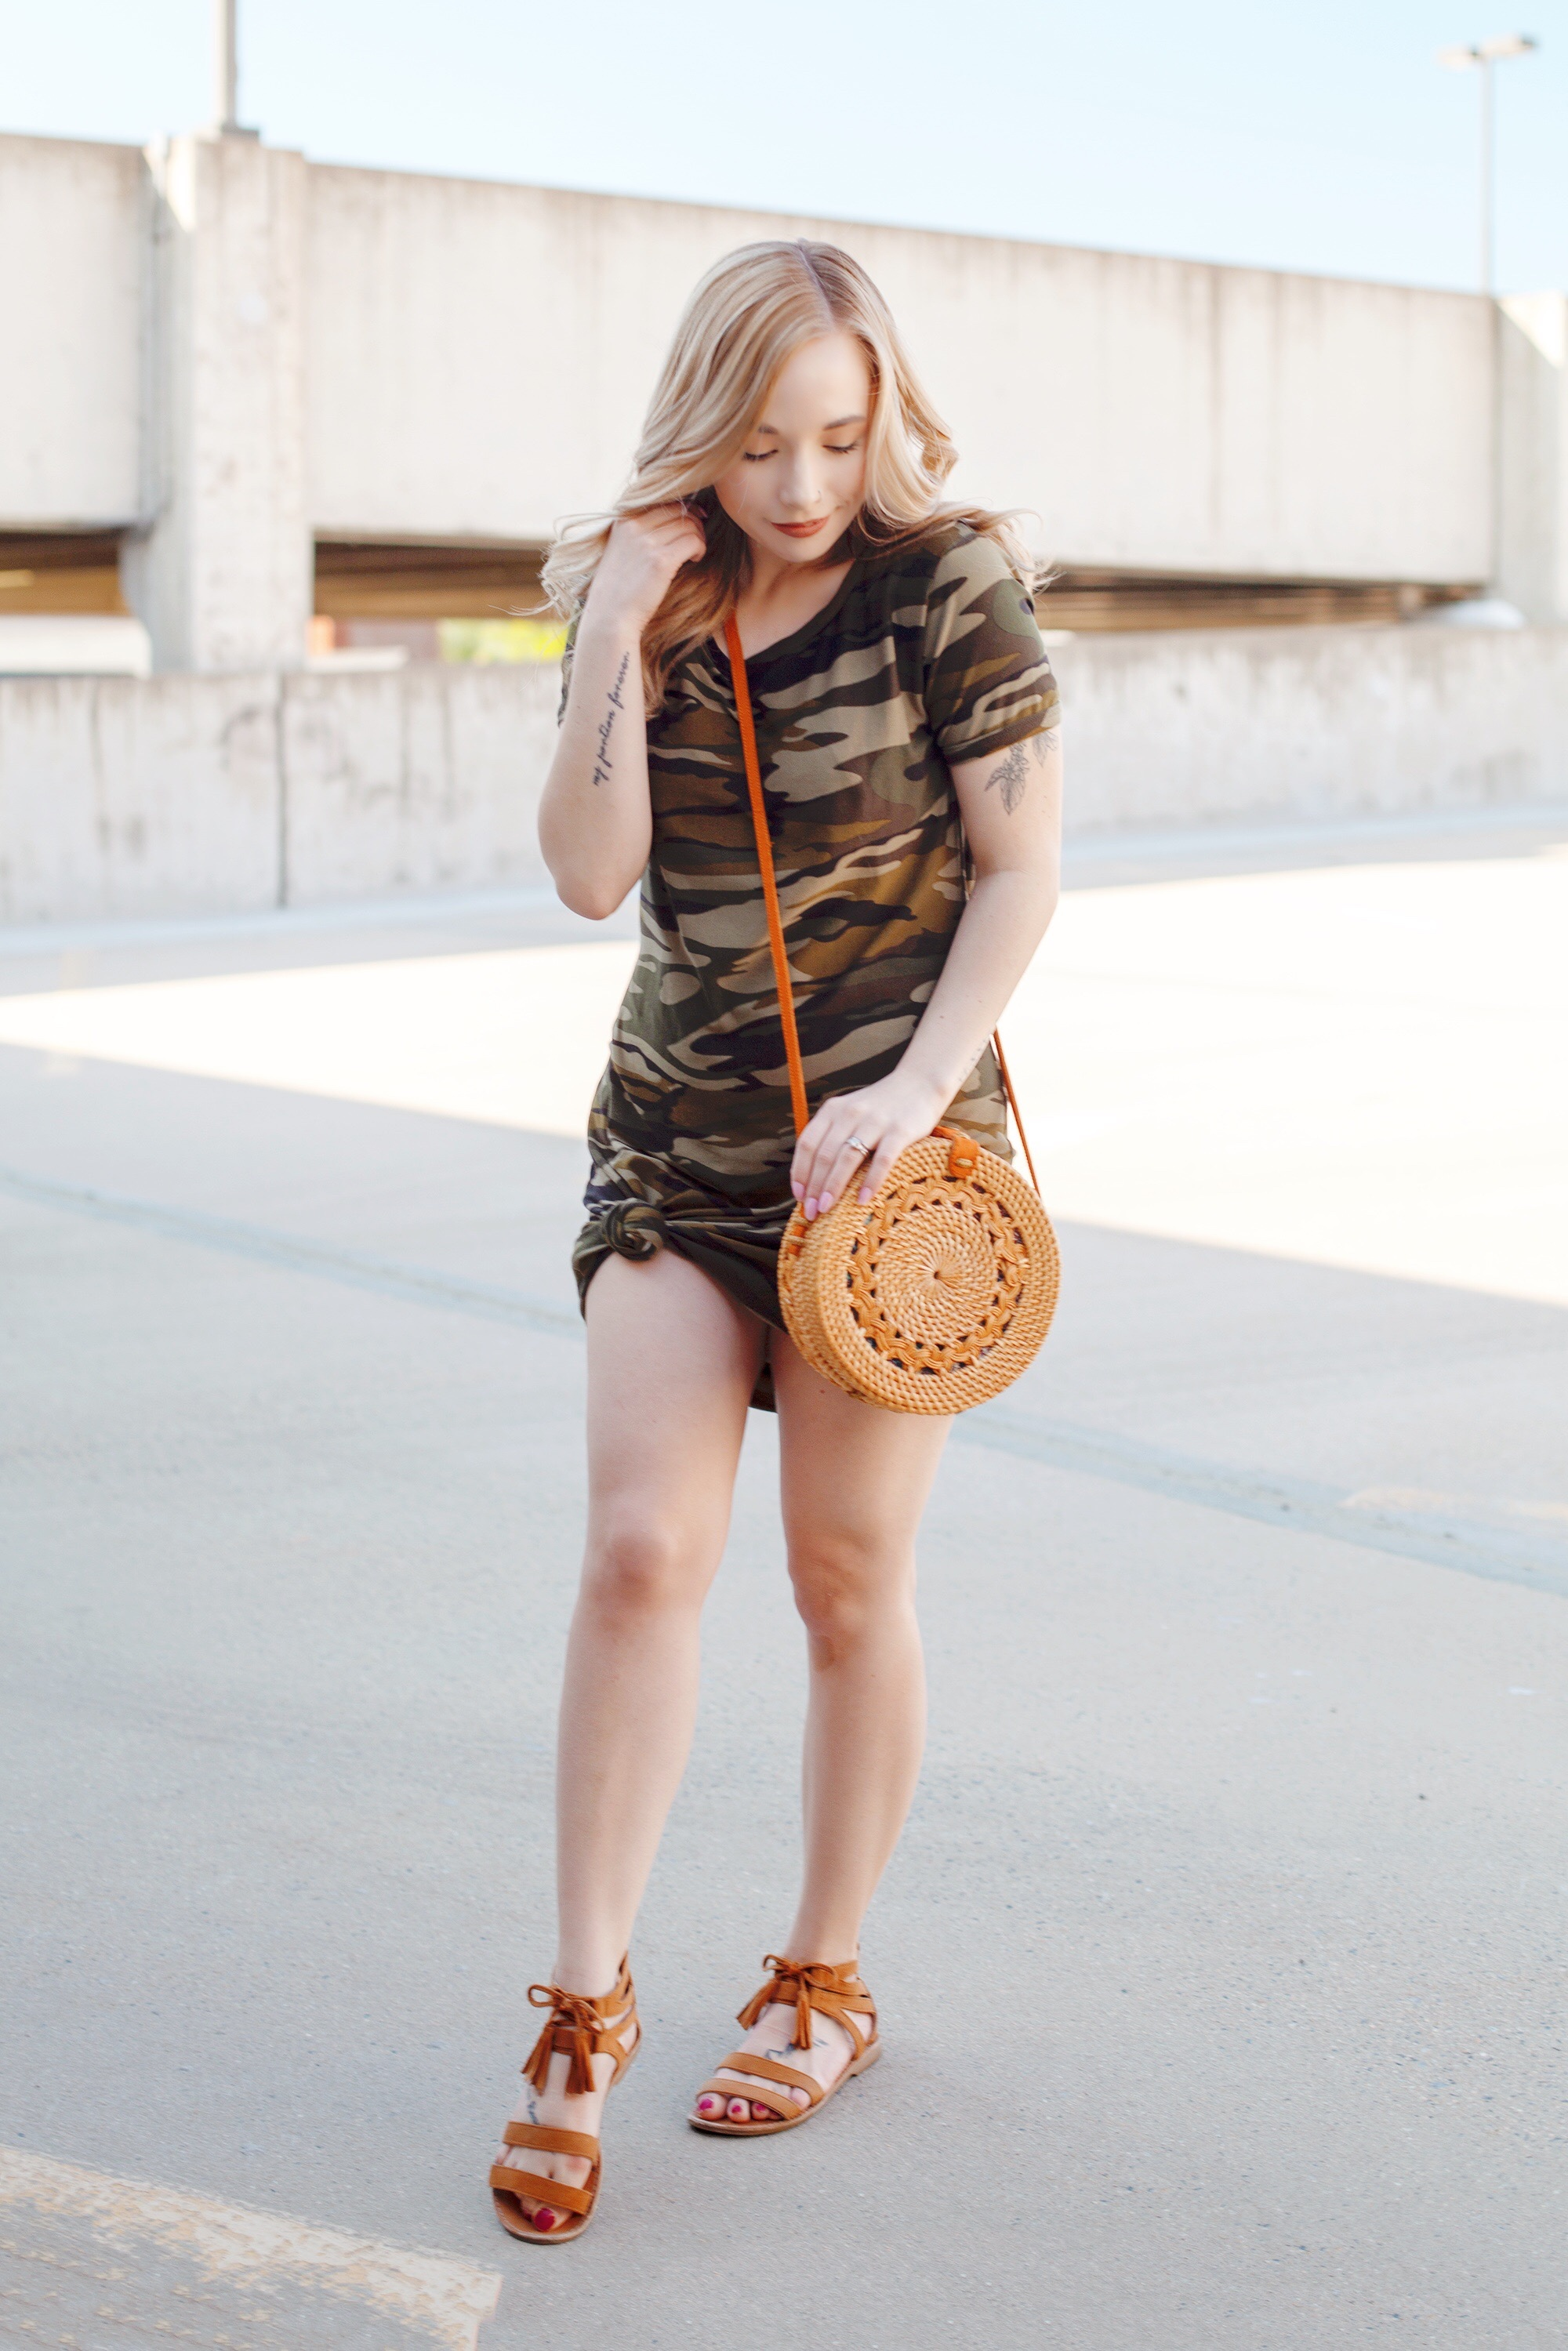 Rattan Crossbody Bag For Summertime